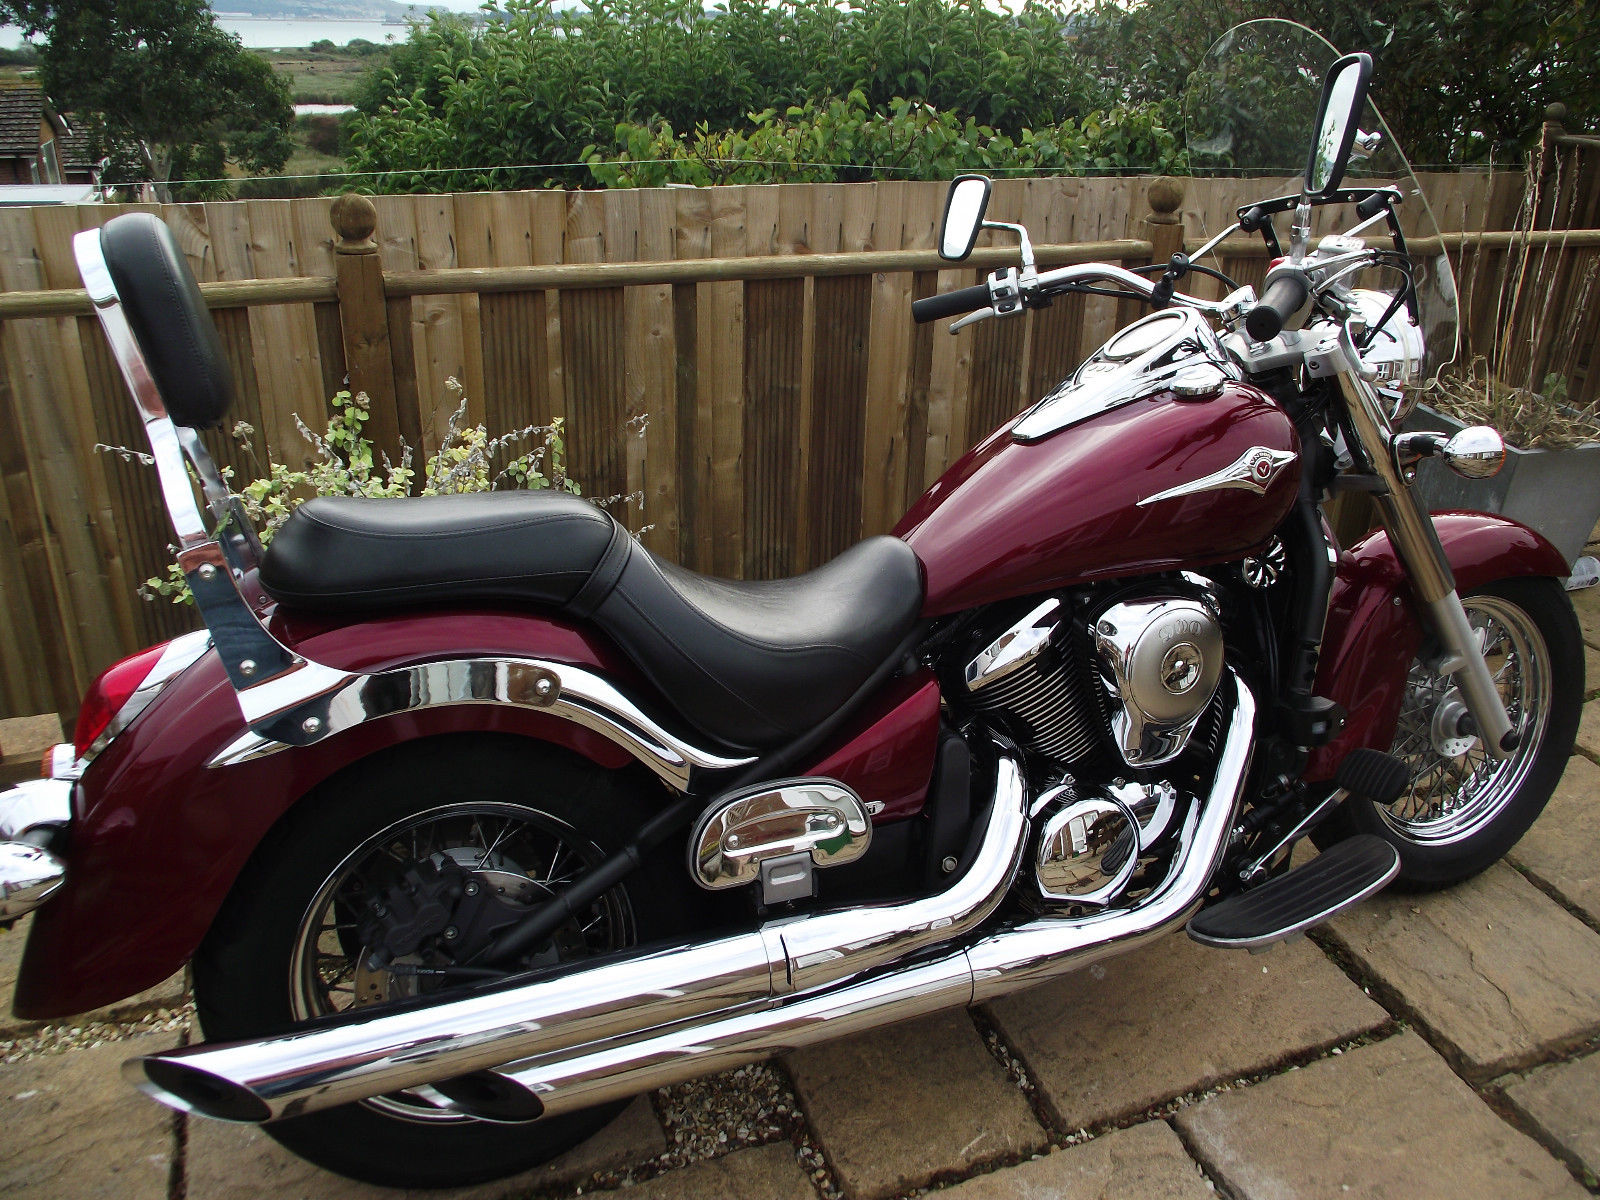 2010 kawasaki vn 900 b9f classic red only 6000 miles one owner. Black Bedroom Furniture Sets. Home Design Ideas